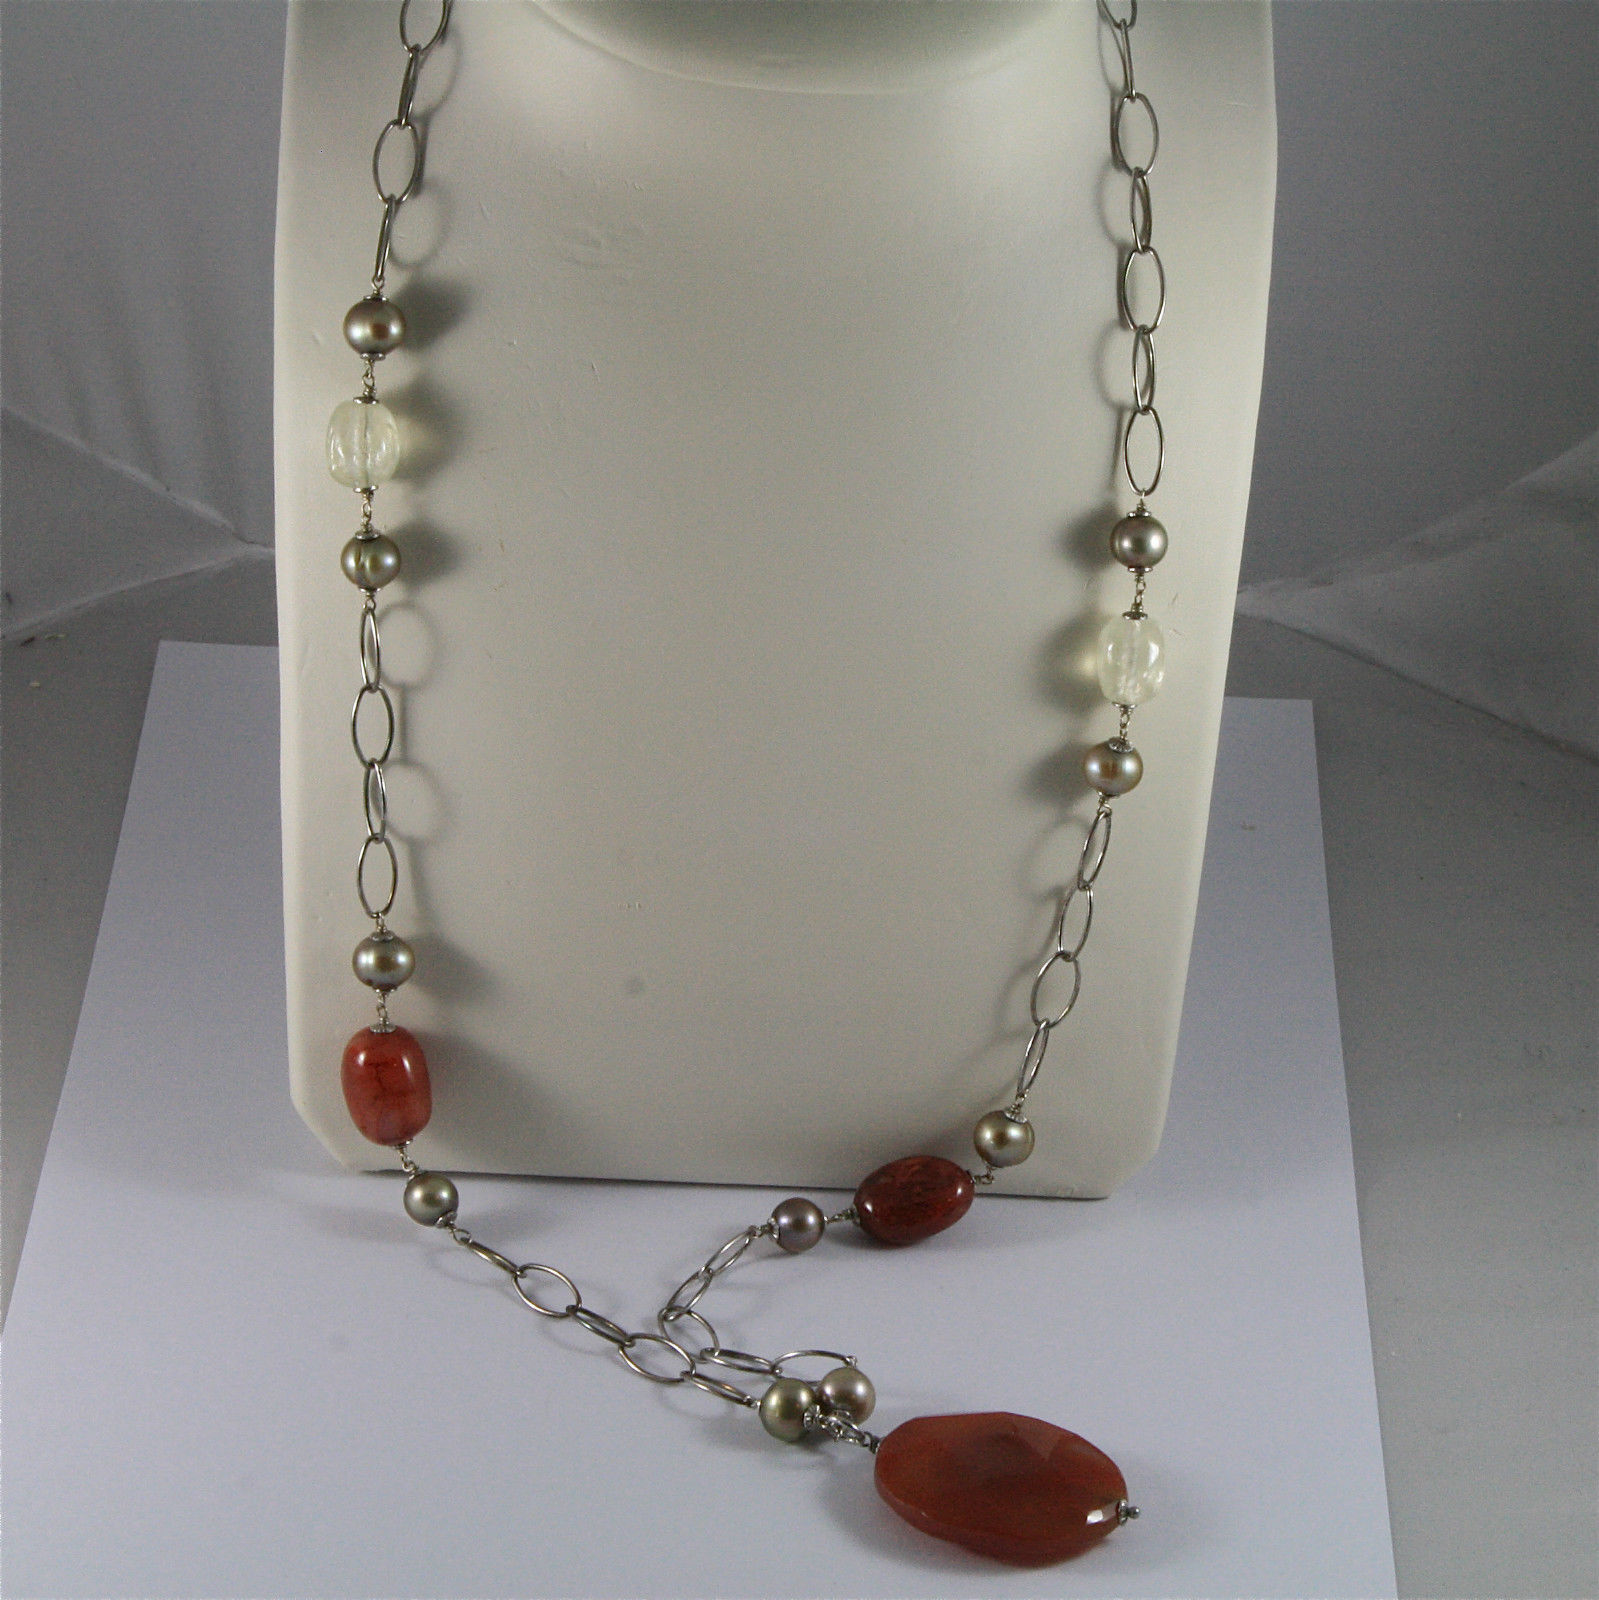 .925 SILVER RHODIUM NECKLACE 29,53 In, RED AGATE, BAROQUE PEARLS, AGATE PENDANT